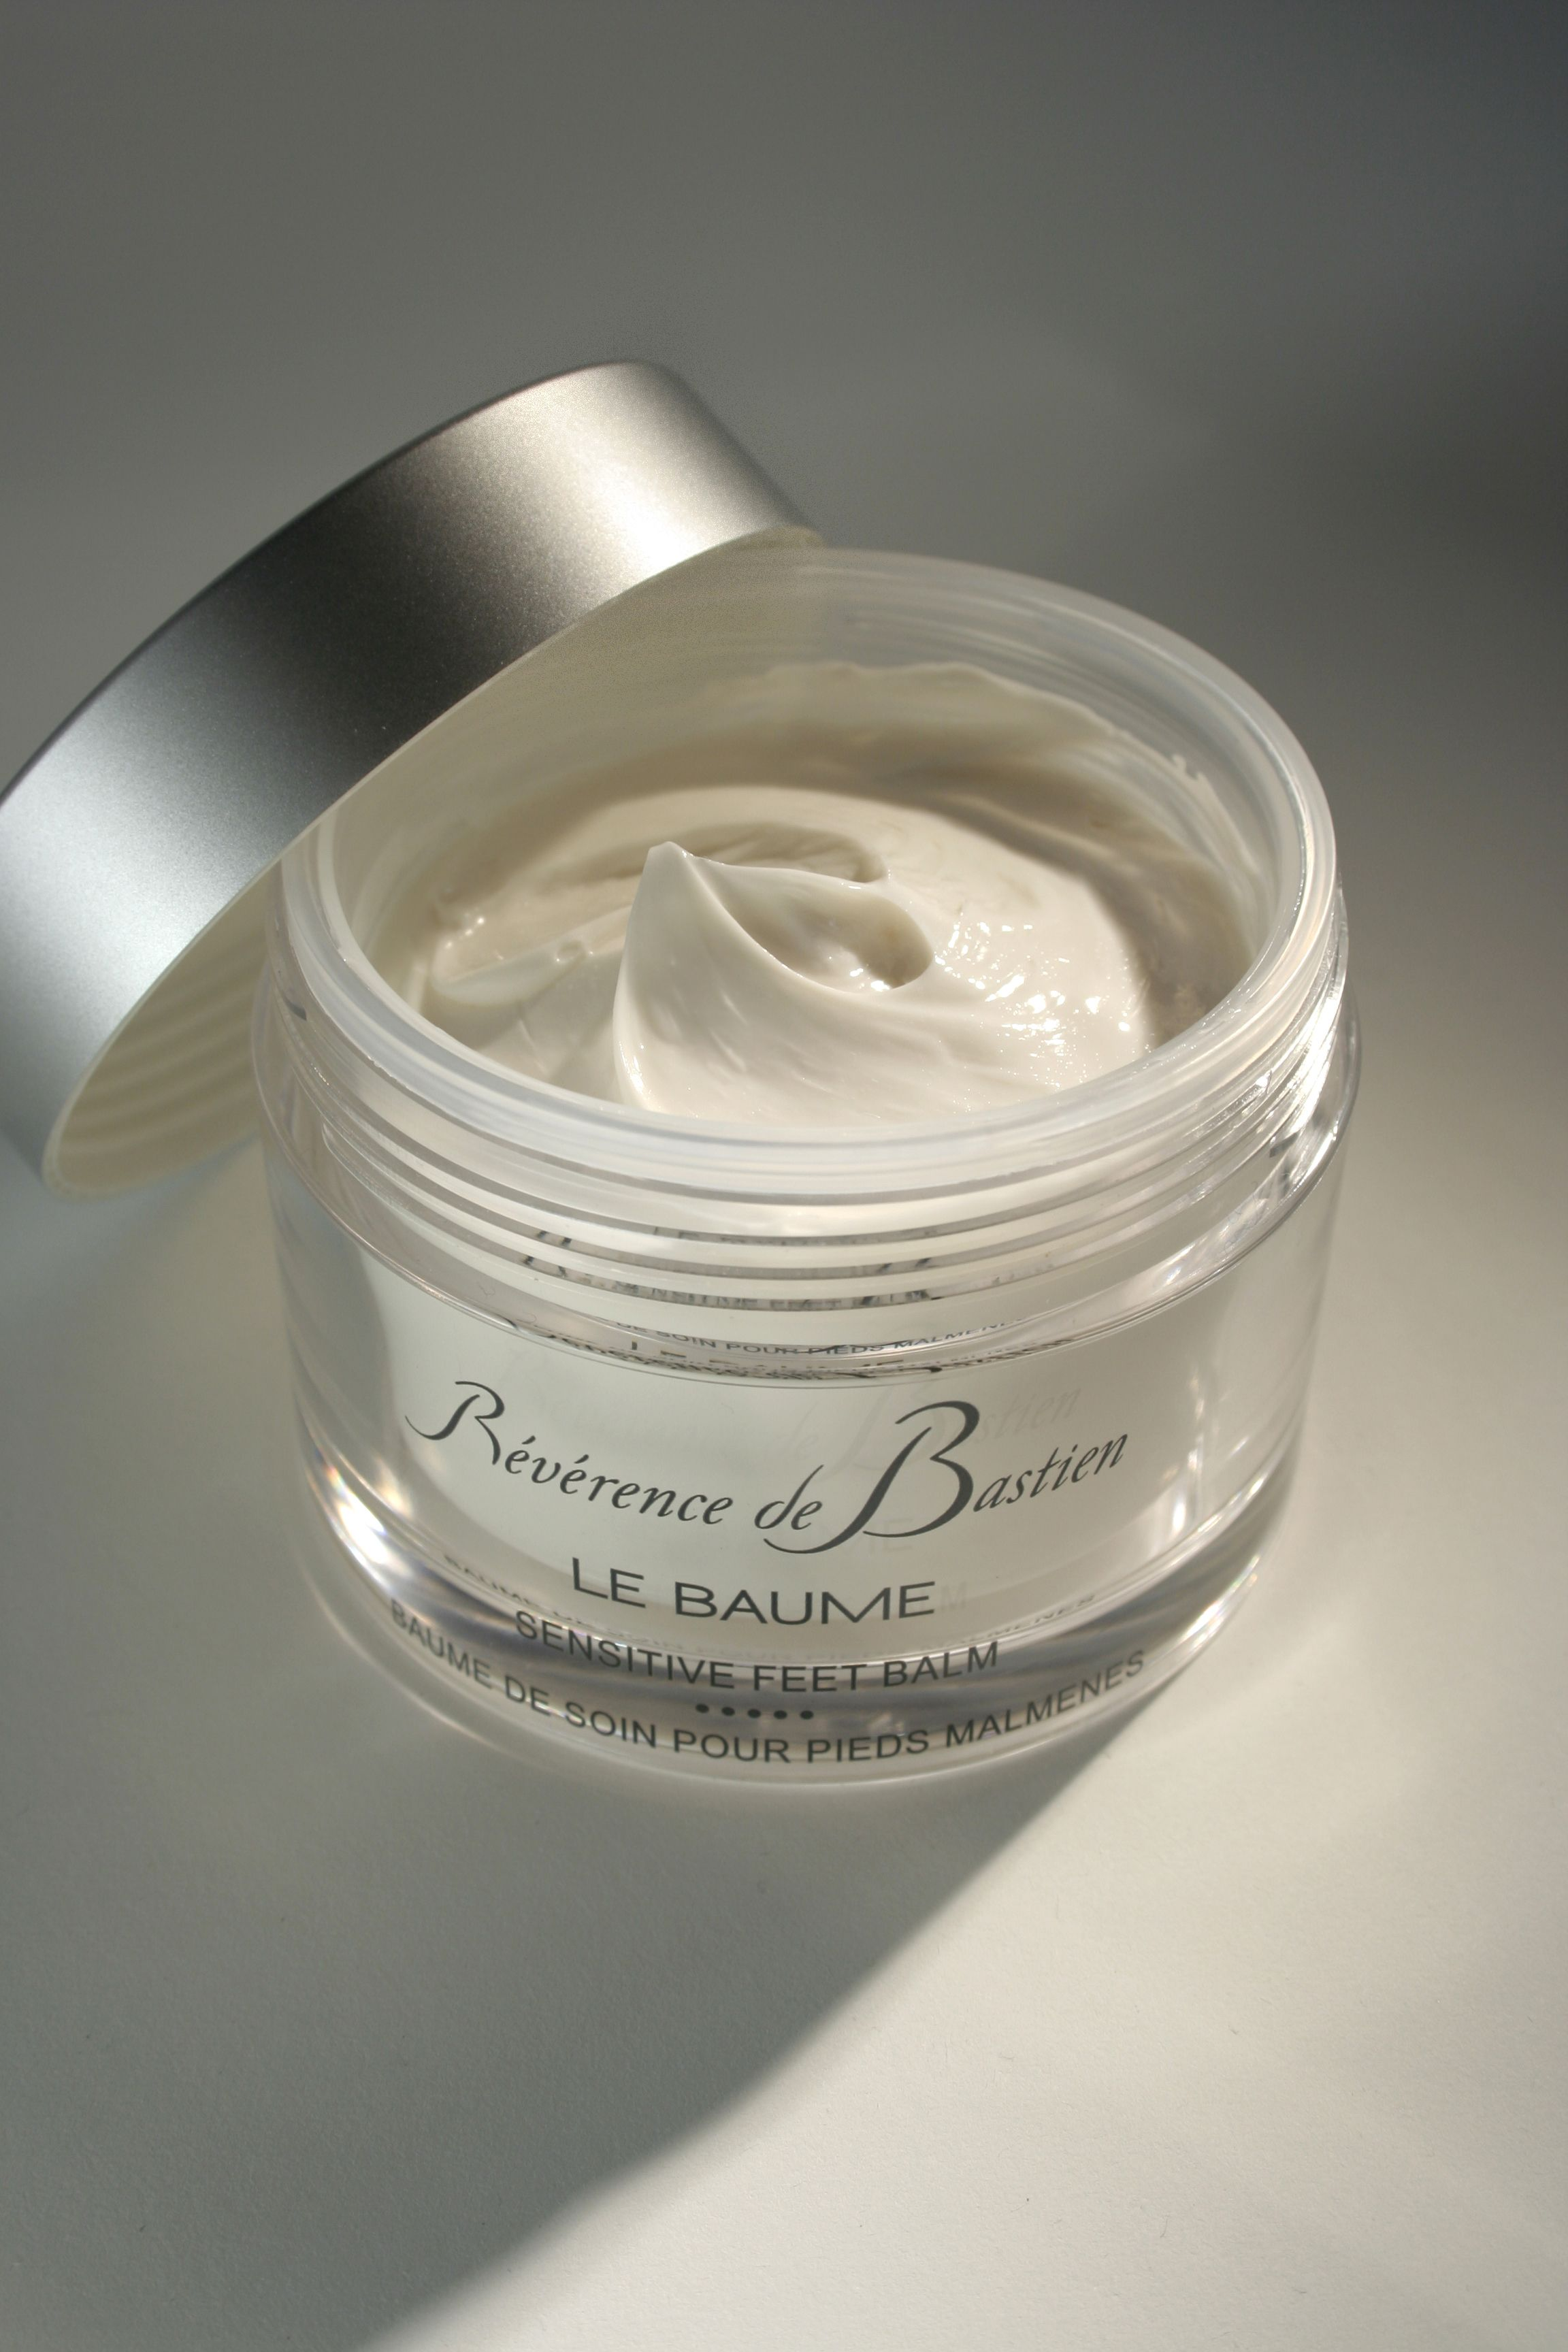 Le Baume - sensitive feet balm A creamy and original plants based formula with an elegant fragrance. It prevents dry skin and nail degeneration, relieves heavy legs and the classic sore and tired feet. It's made out of essential oils of sage, lavender and thyme, watercress and lavendula extracts, mint derivative and zinc. Simply apply a liberal coat daily (with focus on dry areas and cuticles) and massage from the toes, working up to the leg.